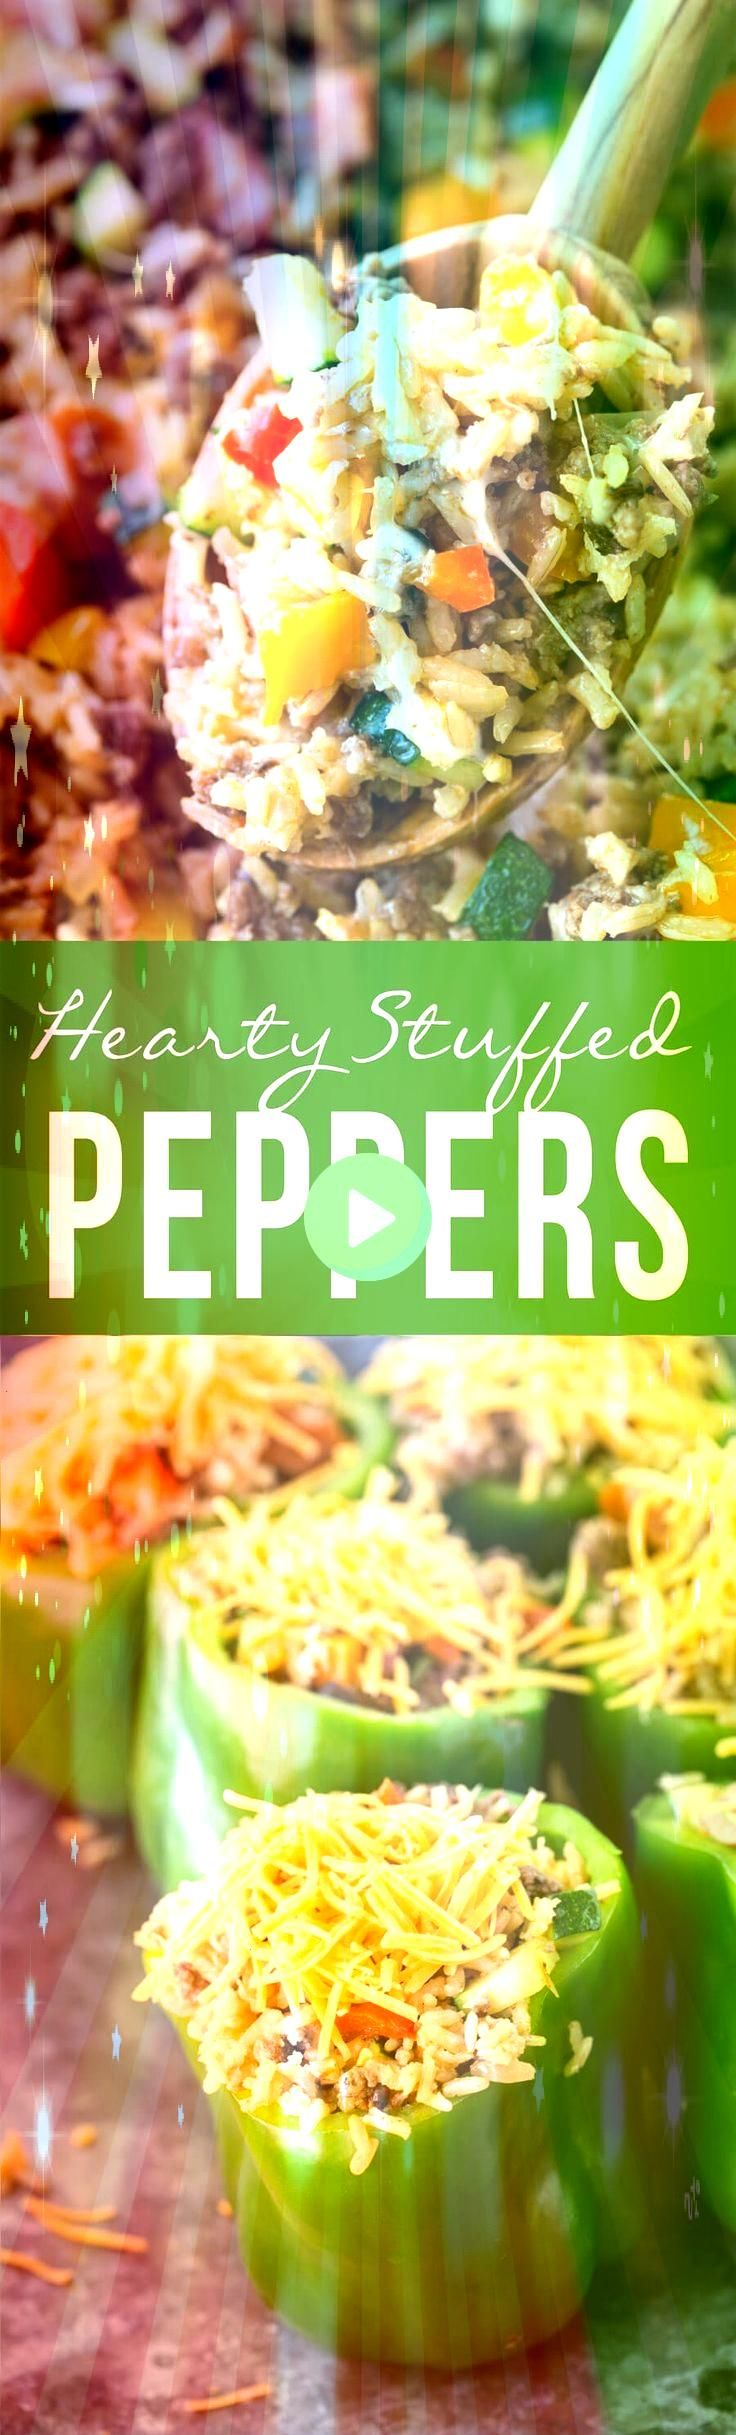 Stuffed Peppers Omit rice Maybe add chopped tomatoes to stuffing mixt  Recipes  Quinoa Hearty Stuffed Peppers Omit rice Maybe add chopped tomatoes to stuffing mixt  Recip...